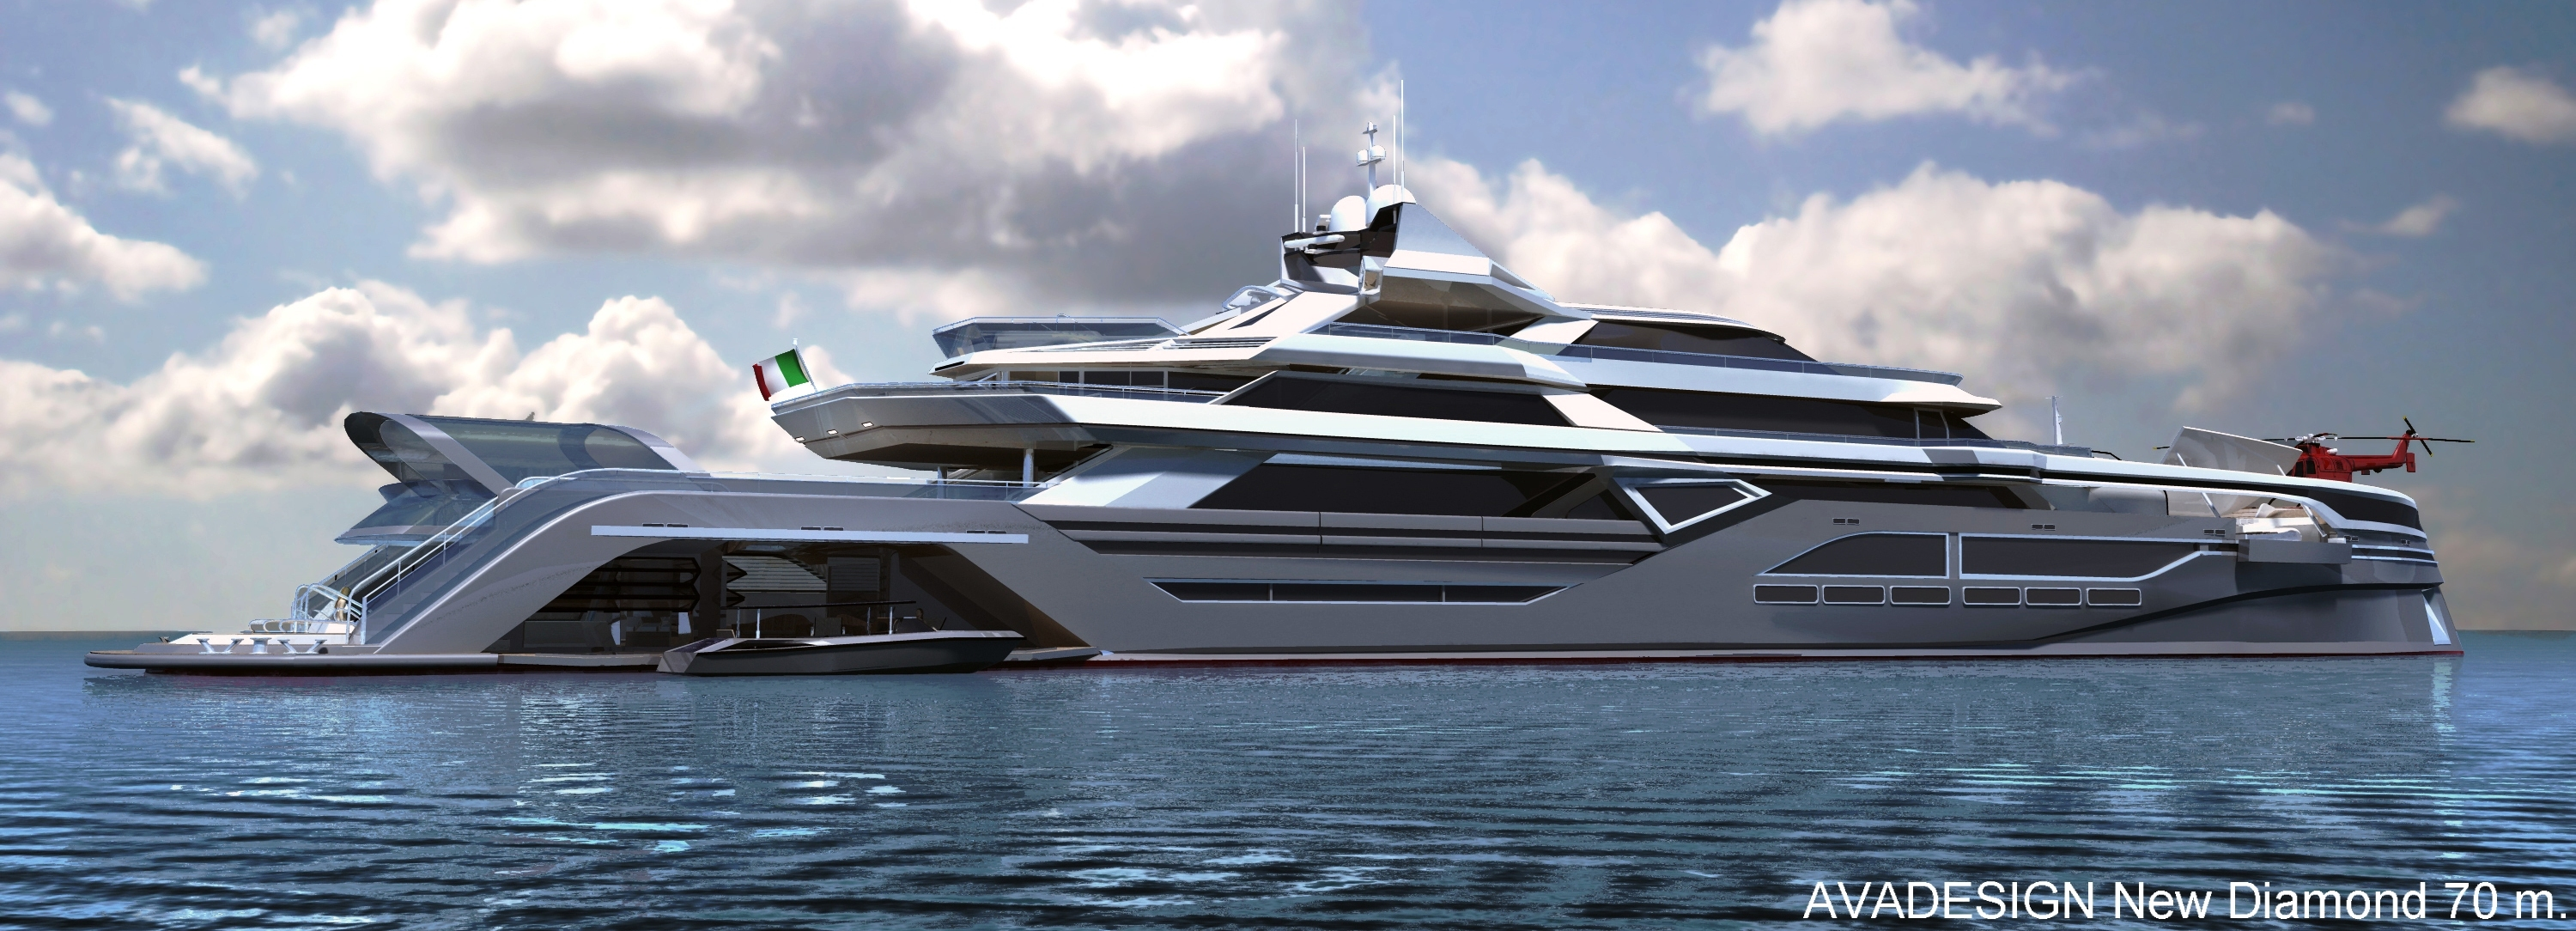 boat water toys with 70m New Diamond Superyacht Motor Yacht Profile on 70m New Diamond Superyacht Motor Yacht Profile as well Sealegs likewise Patriot Th610 Off Road Toy Hauler C er Trailer together with Elastigirl Mrs Incredible The Incredibles Helen Parr also Stealthspeedboat.